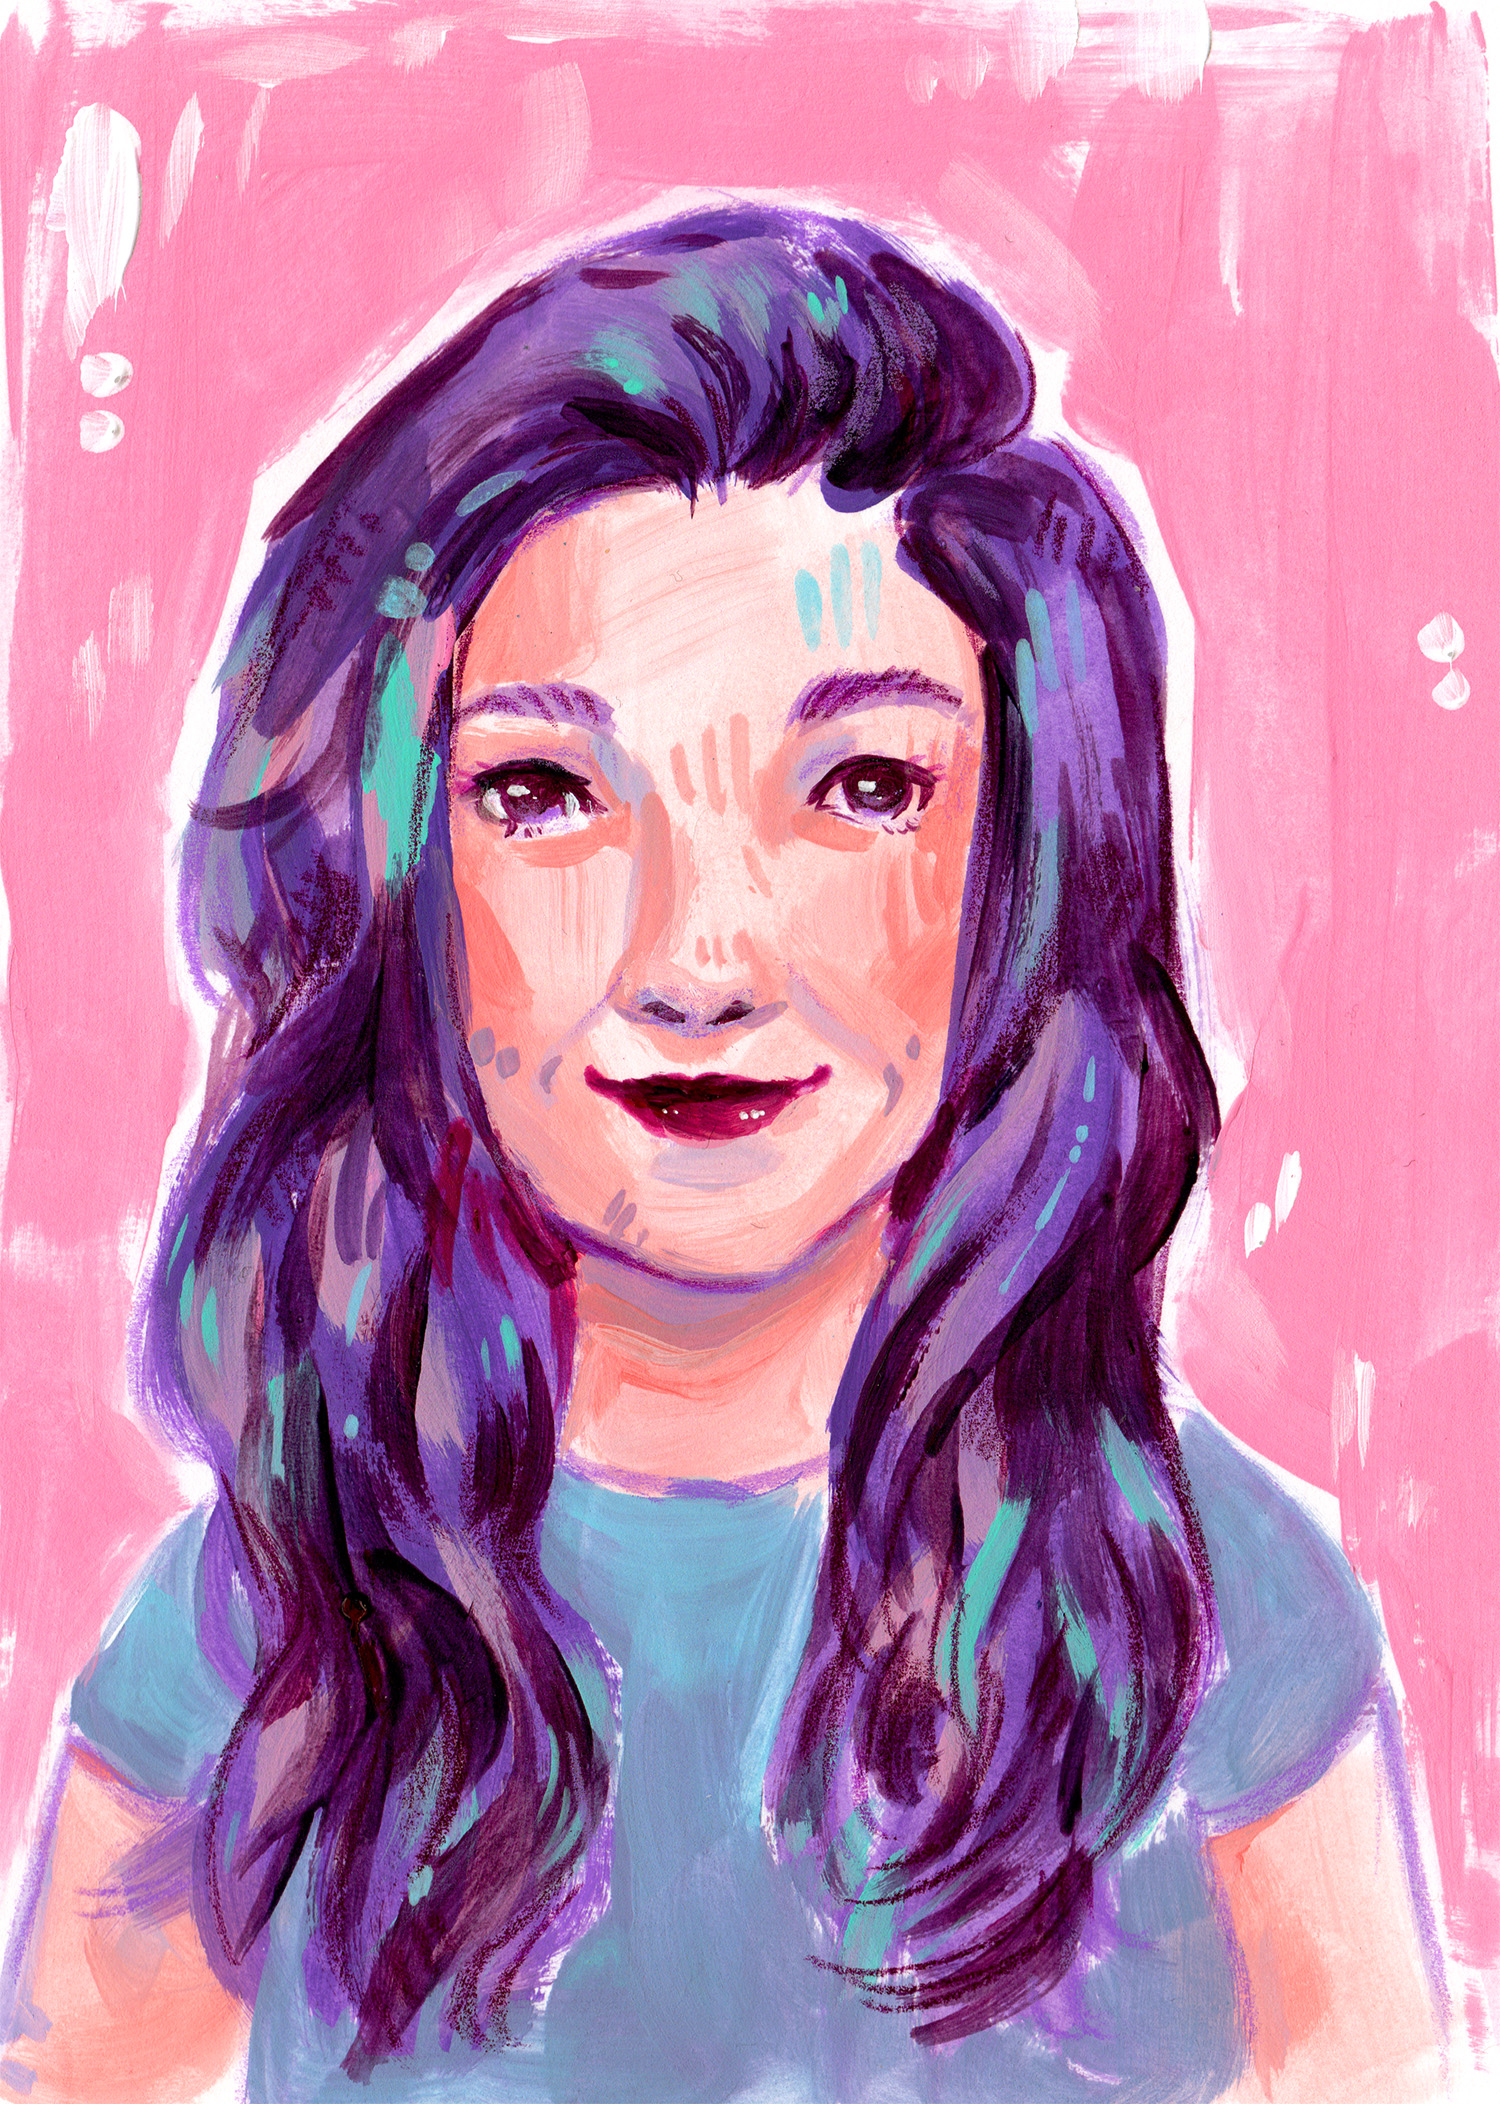 colorfully stylized acrylic illustration of a woman's portrait with a pink background